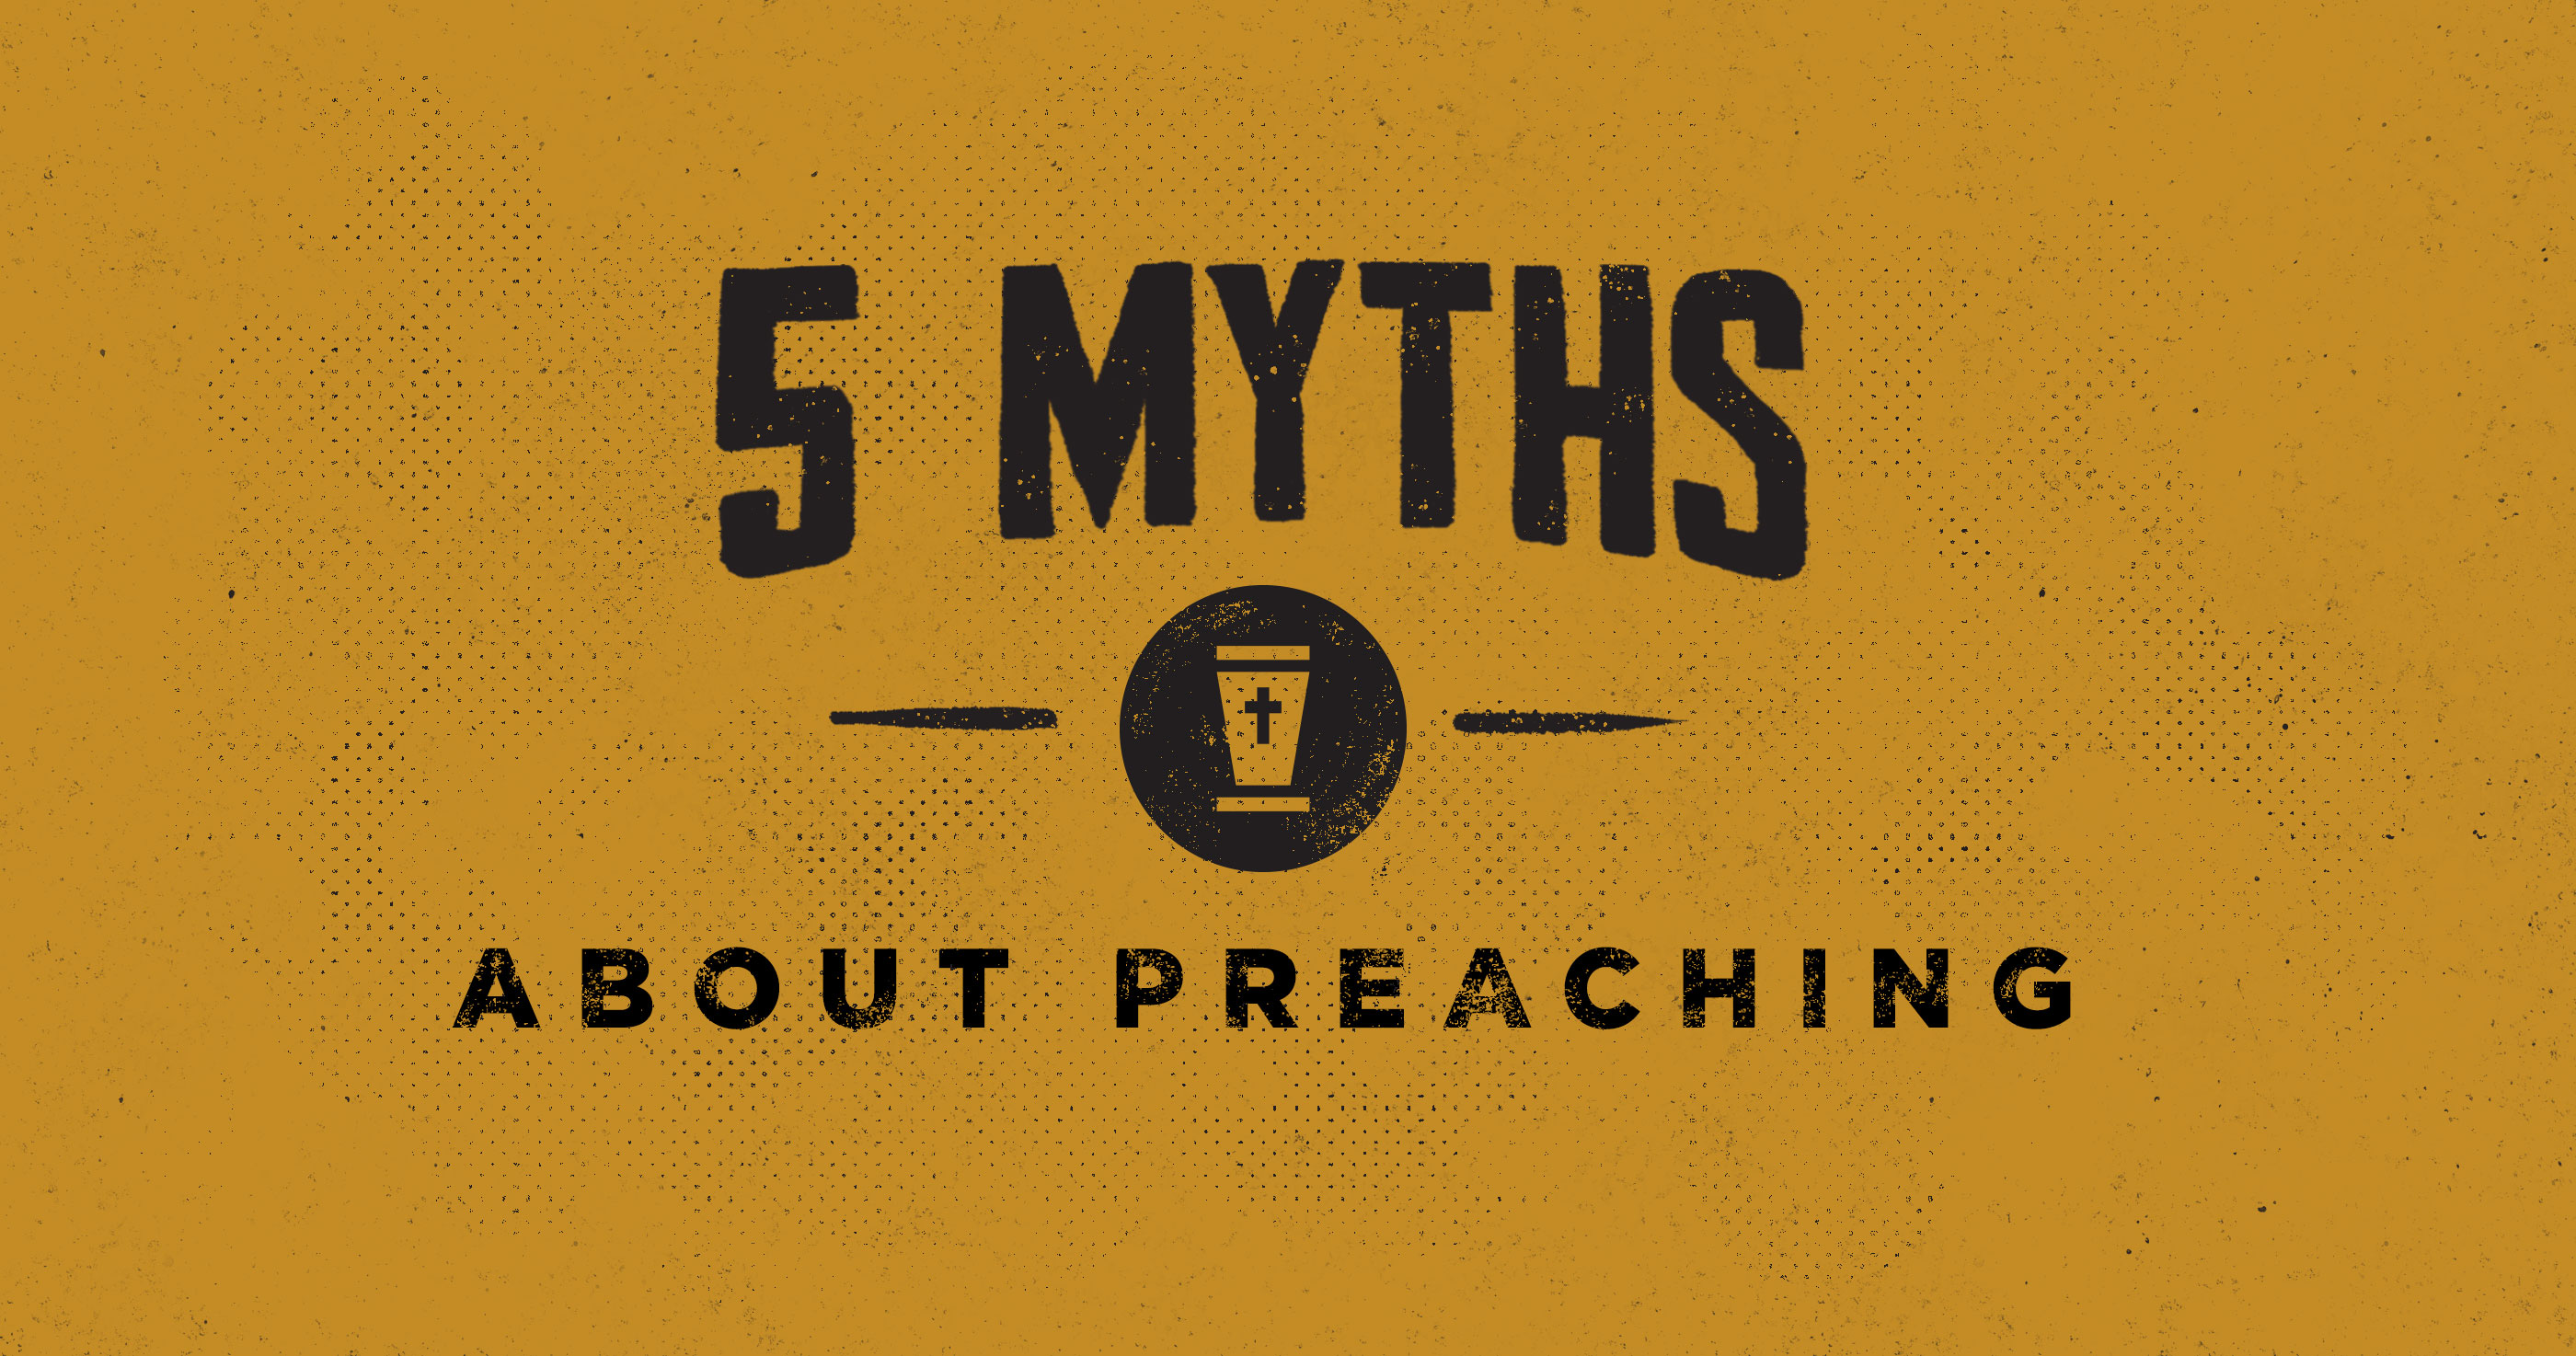 5 Myths about Preaching